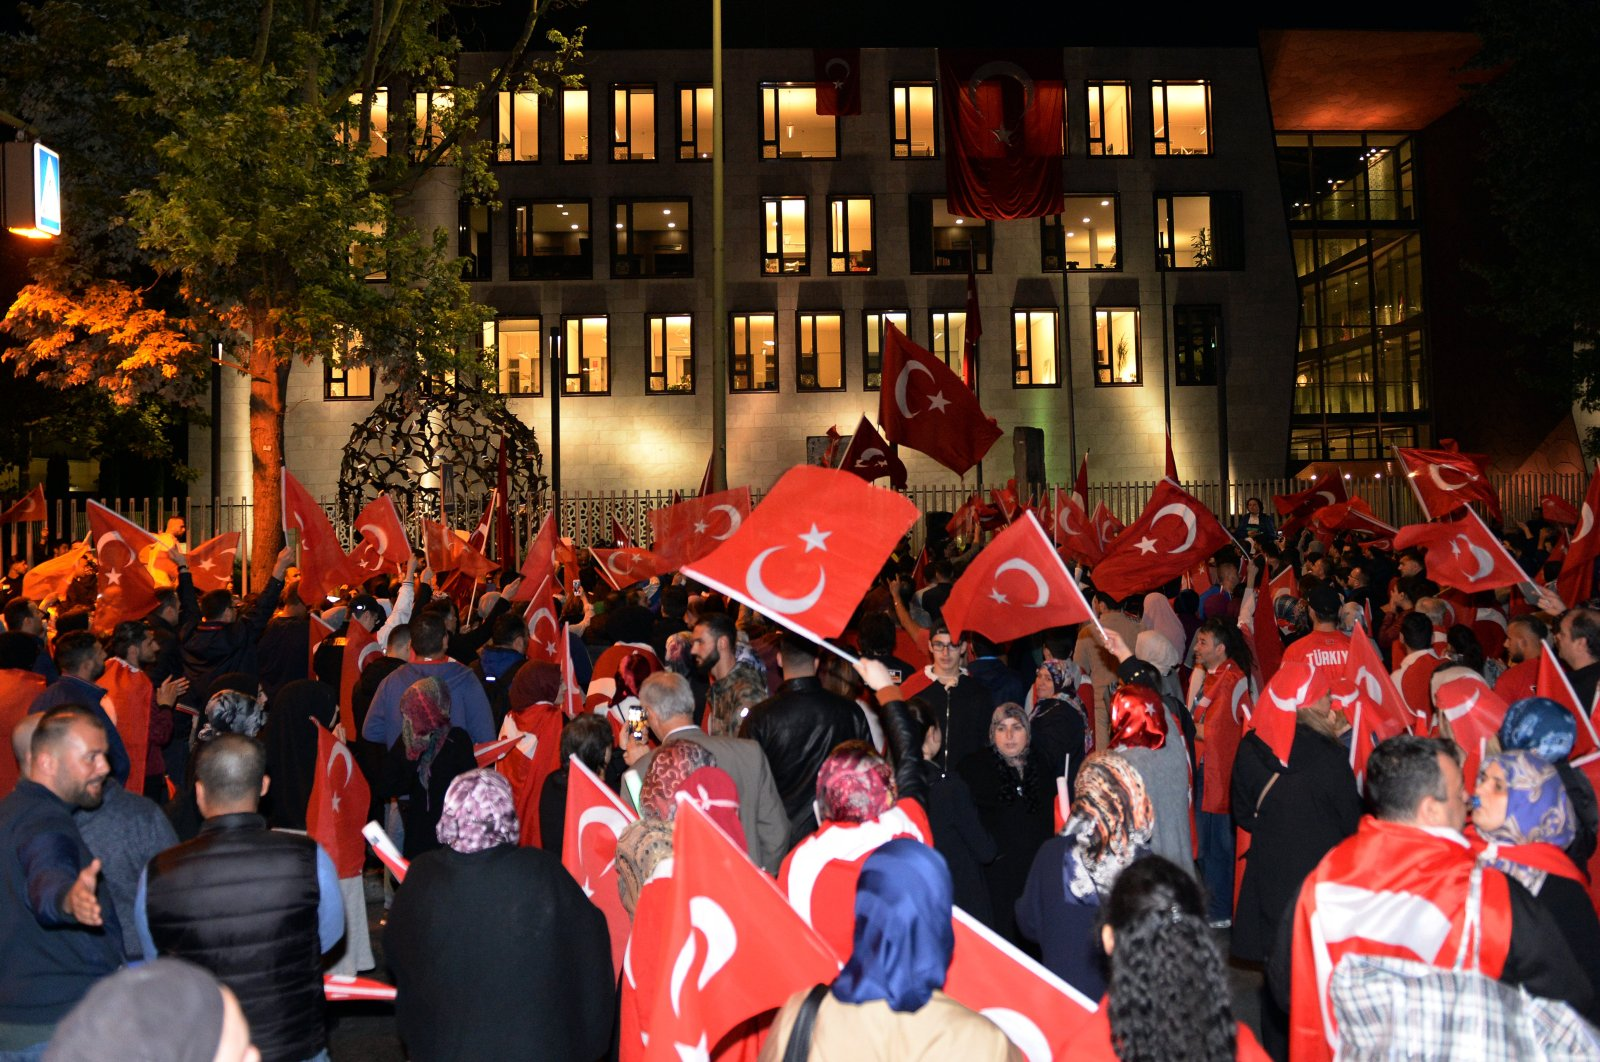 People protest FETÖ's 2016 coup attempt in Turkey, during a rally in Berlin, Germany on July 15, 2017. (AA Photo)